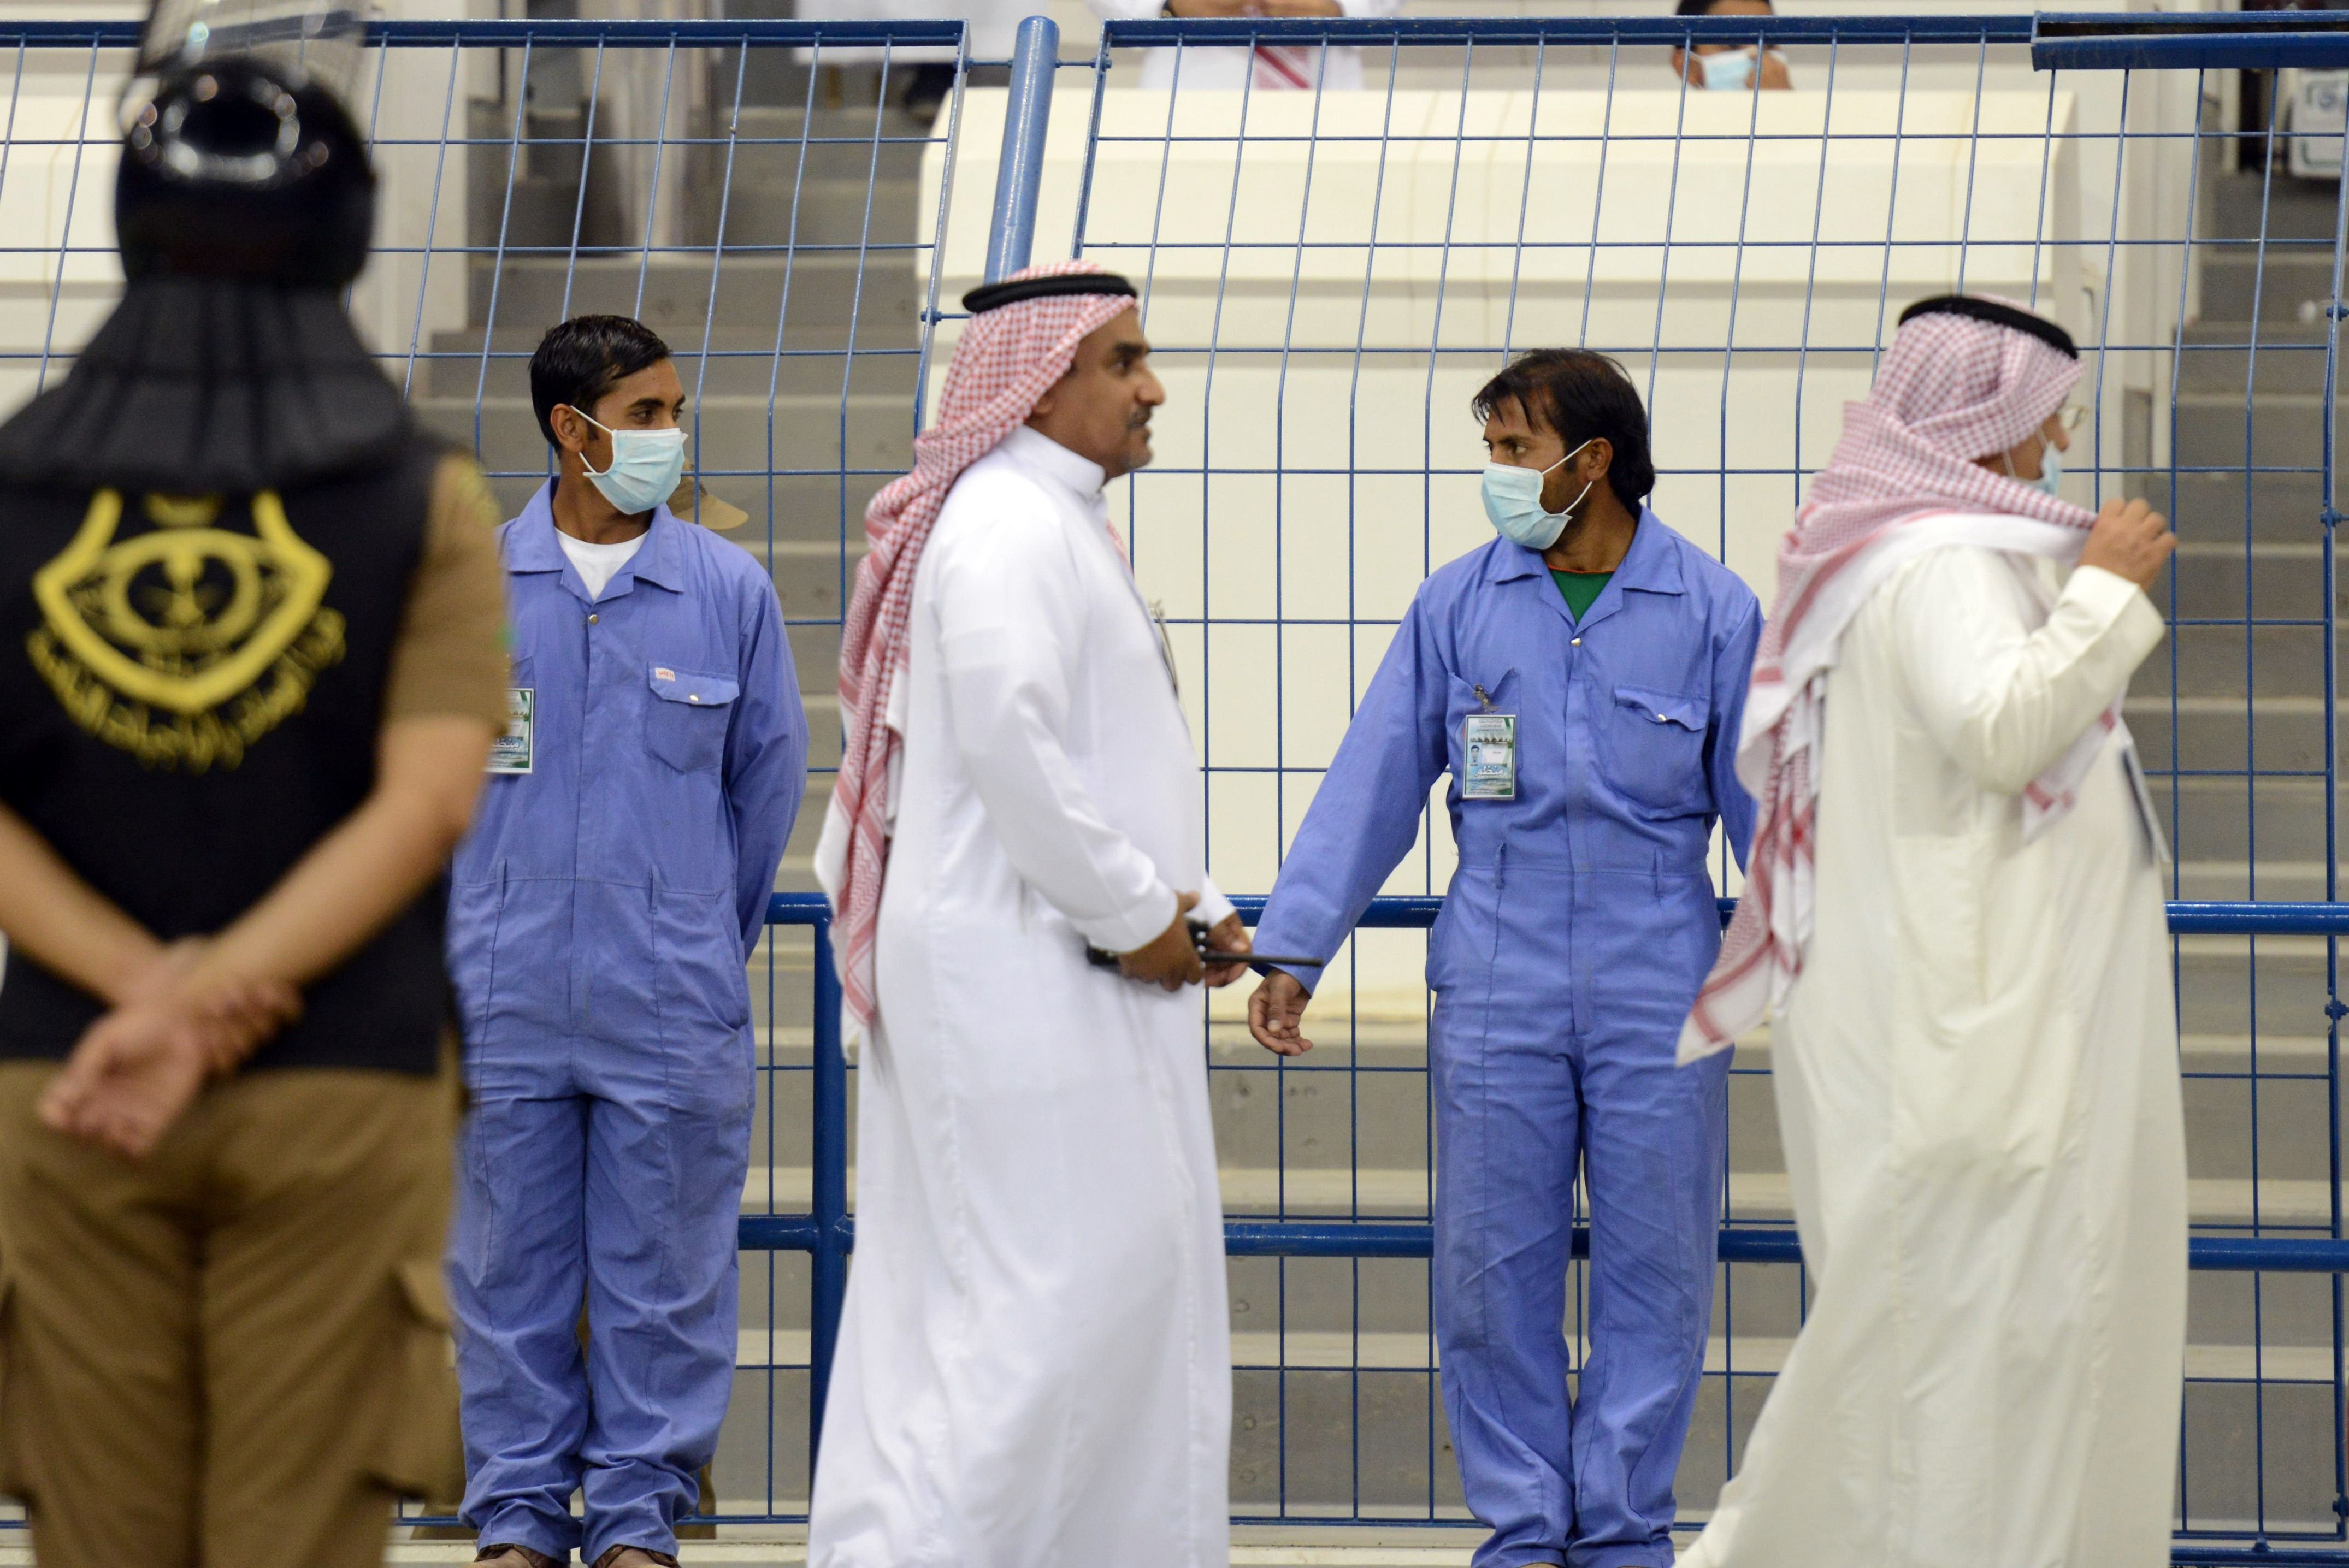 Asian workers wear mouth and nose masks while on duty during a football match at the King Fahad stadium, on April 22, 2014 in Riyadh. The health ministry reported more MERS cases in the city of Jeddah, prompting authorities to close the emergency department at the city's King Fahd Hospital.